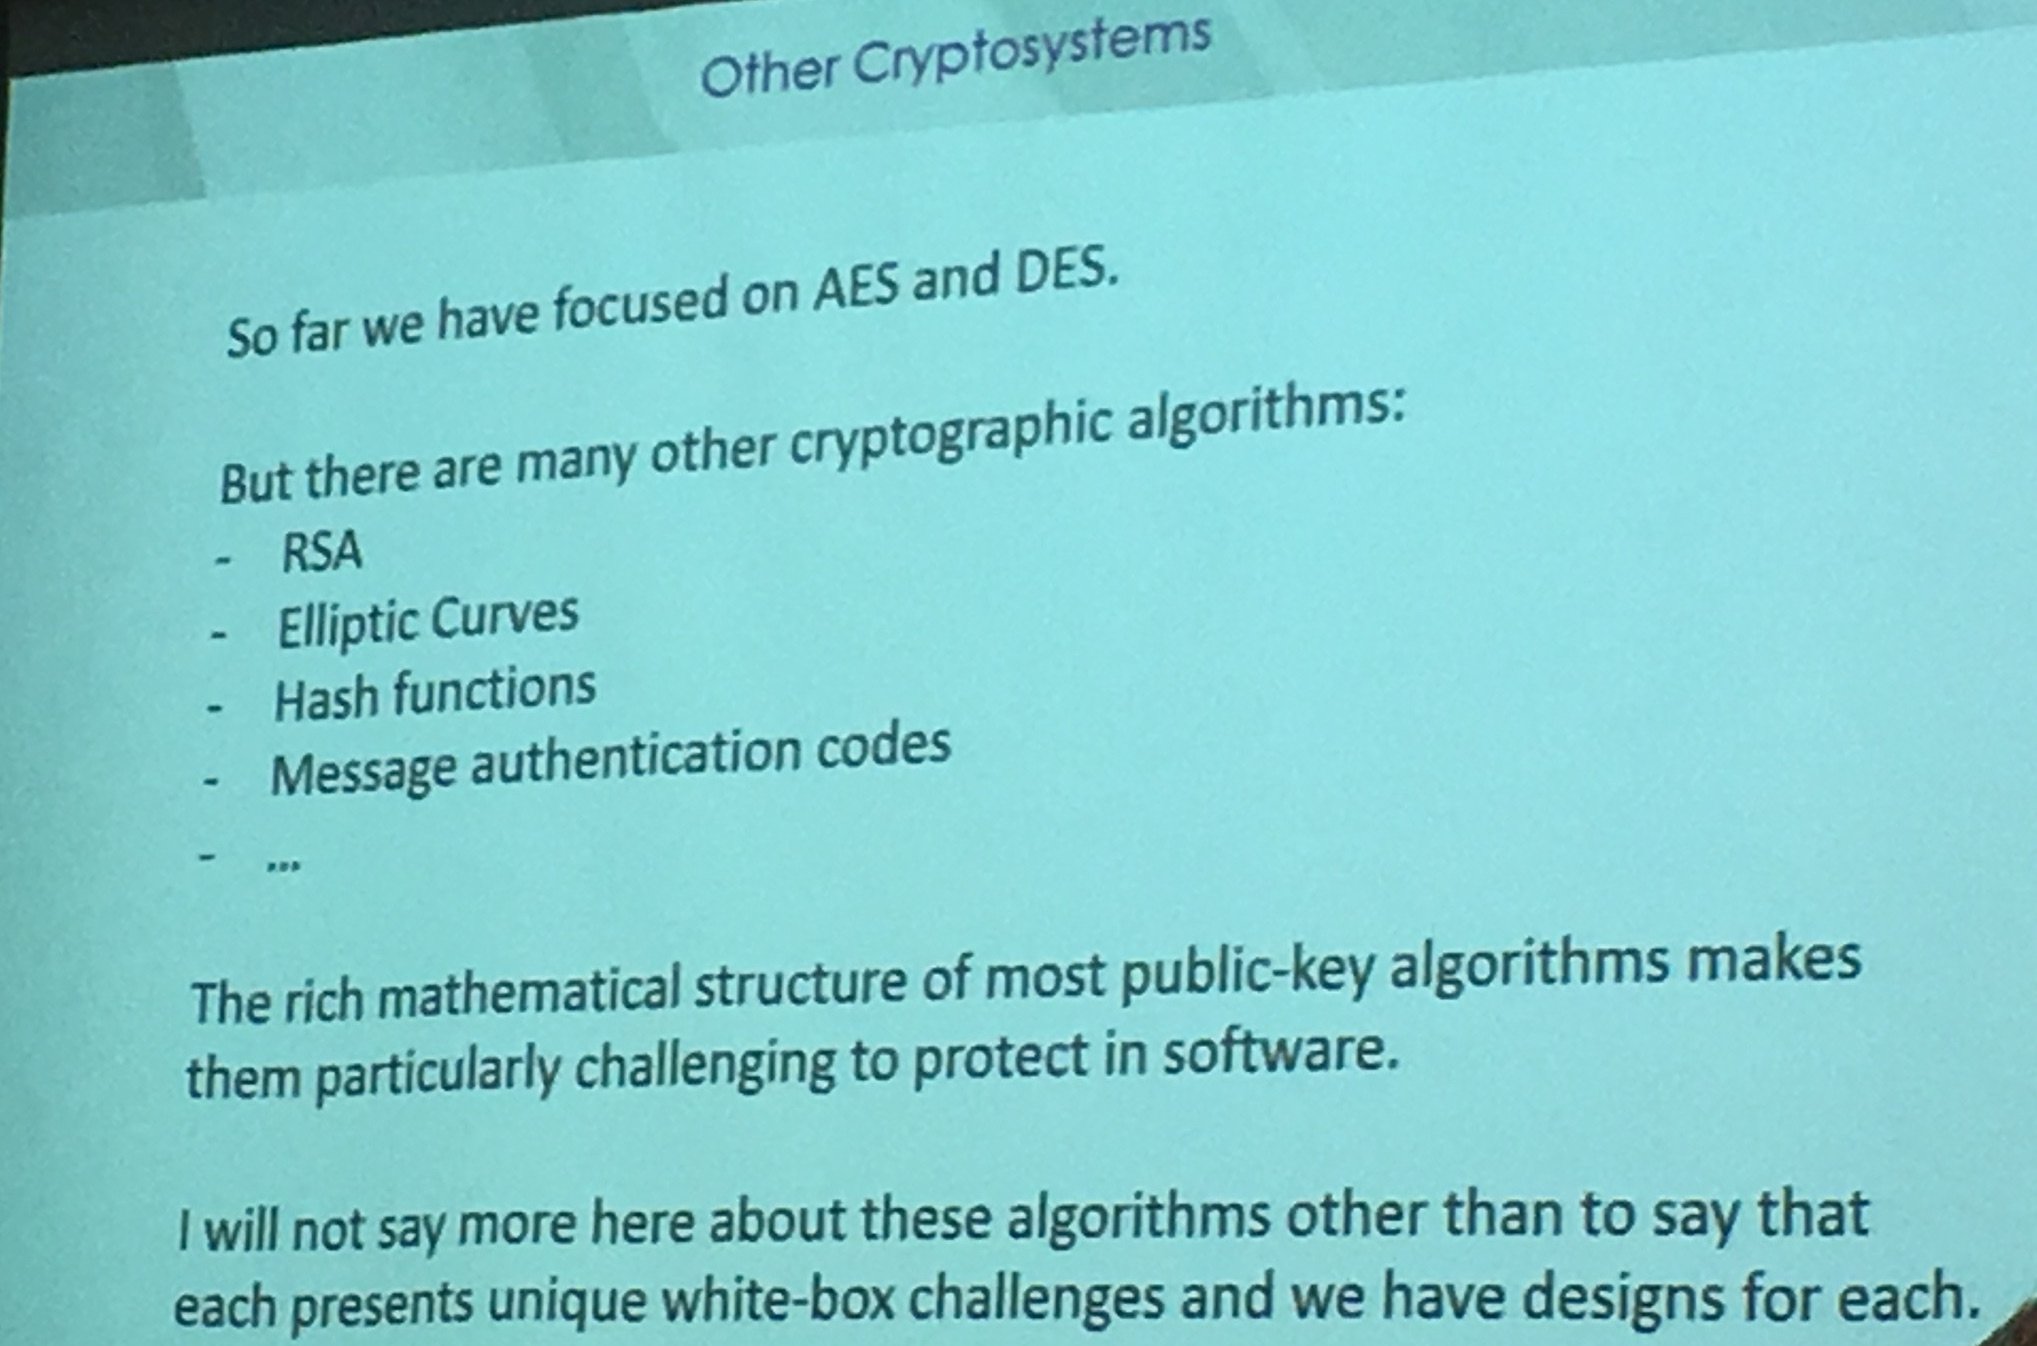 other cryptosystems